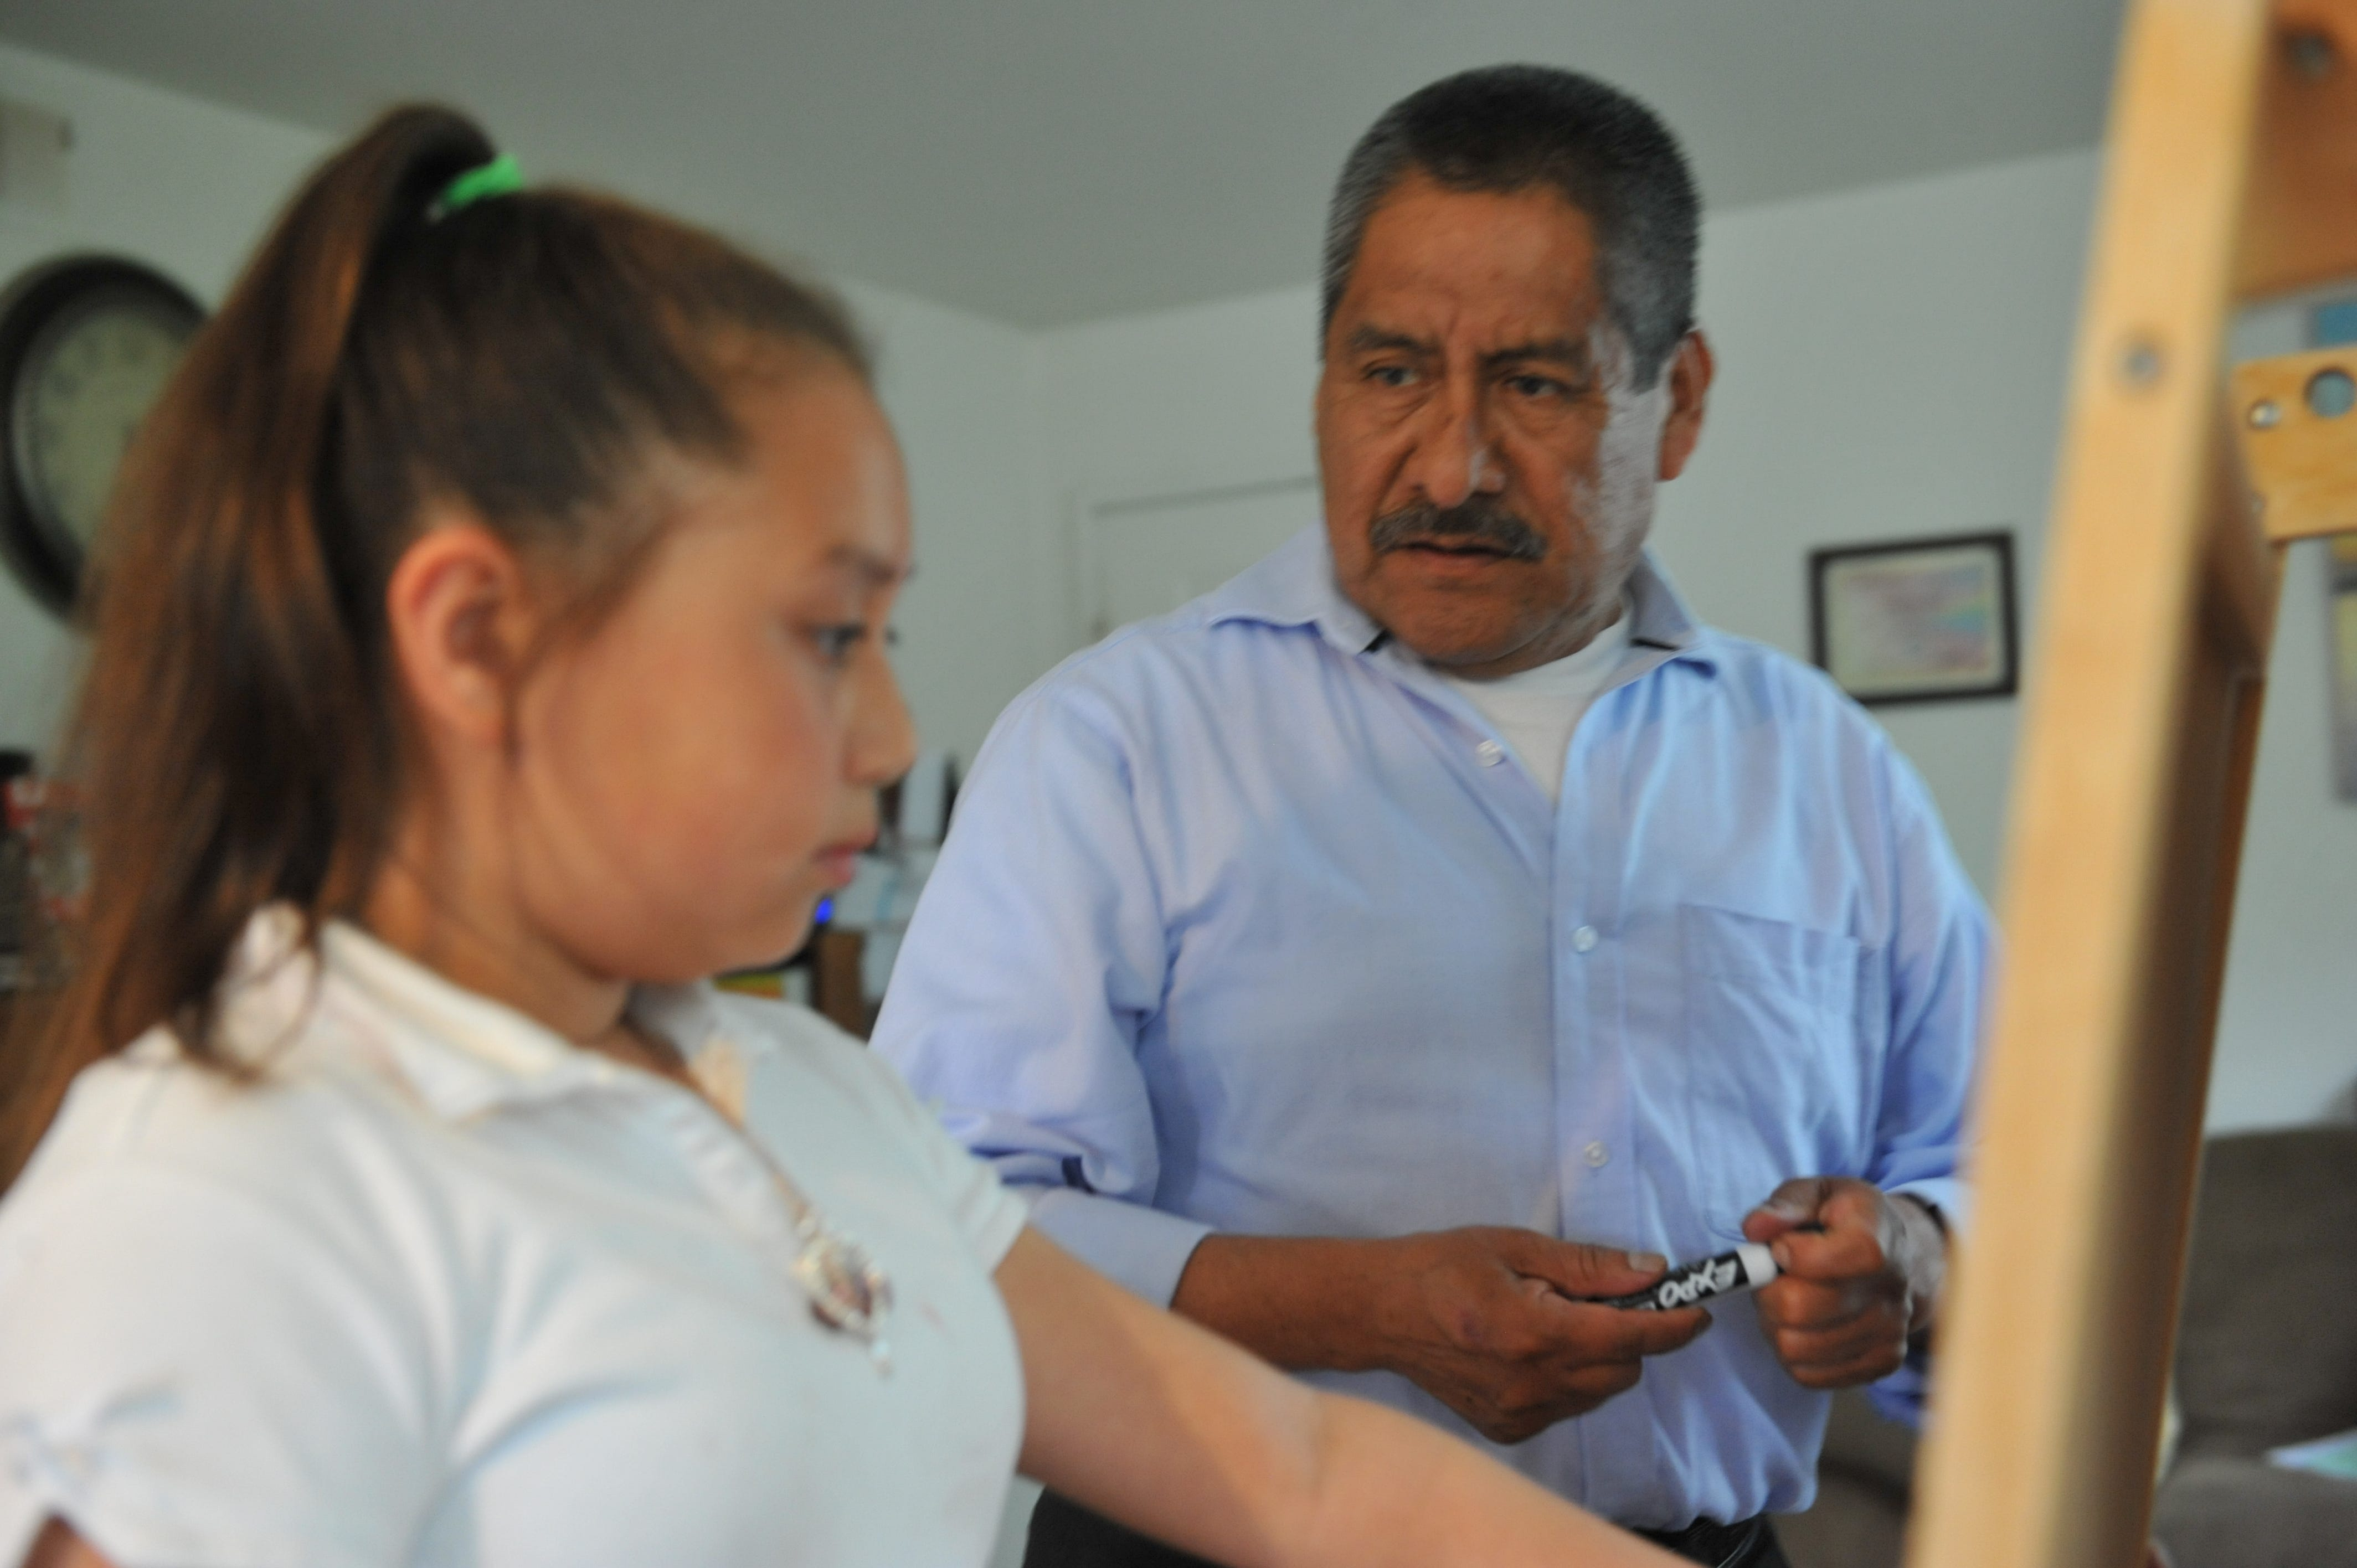 Adolfo González helps his granddaughter Kayla with her homework using the whiteboard in his Salinas home.